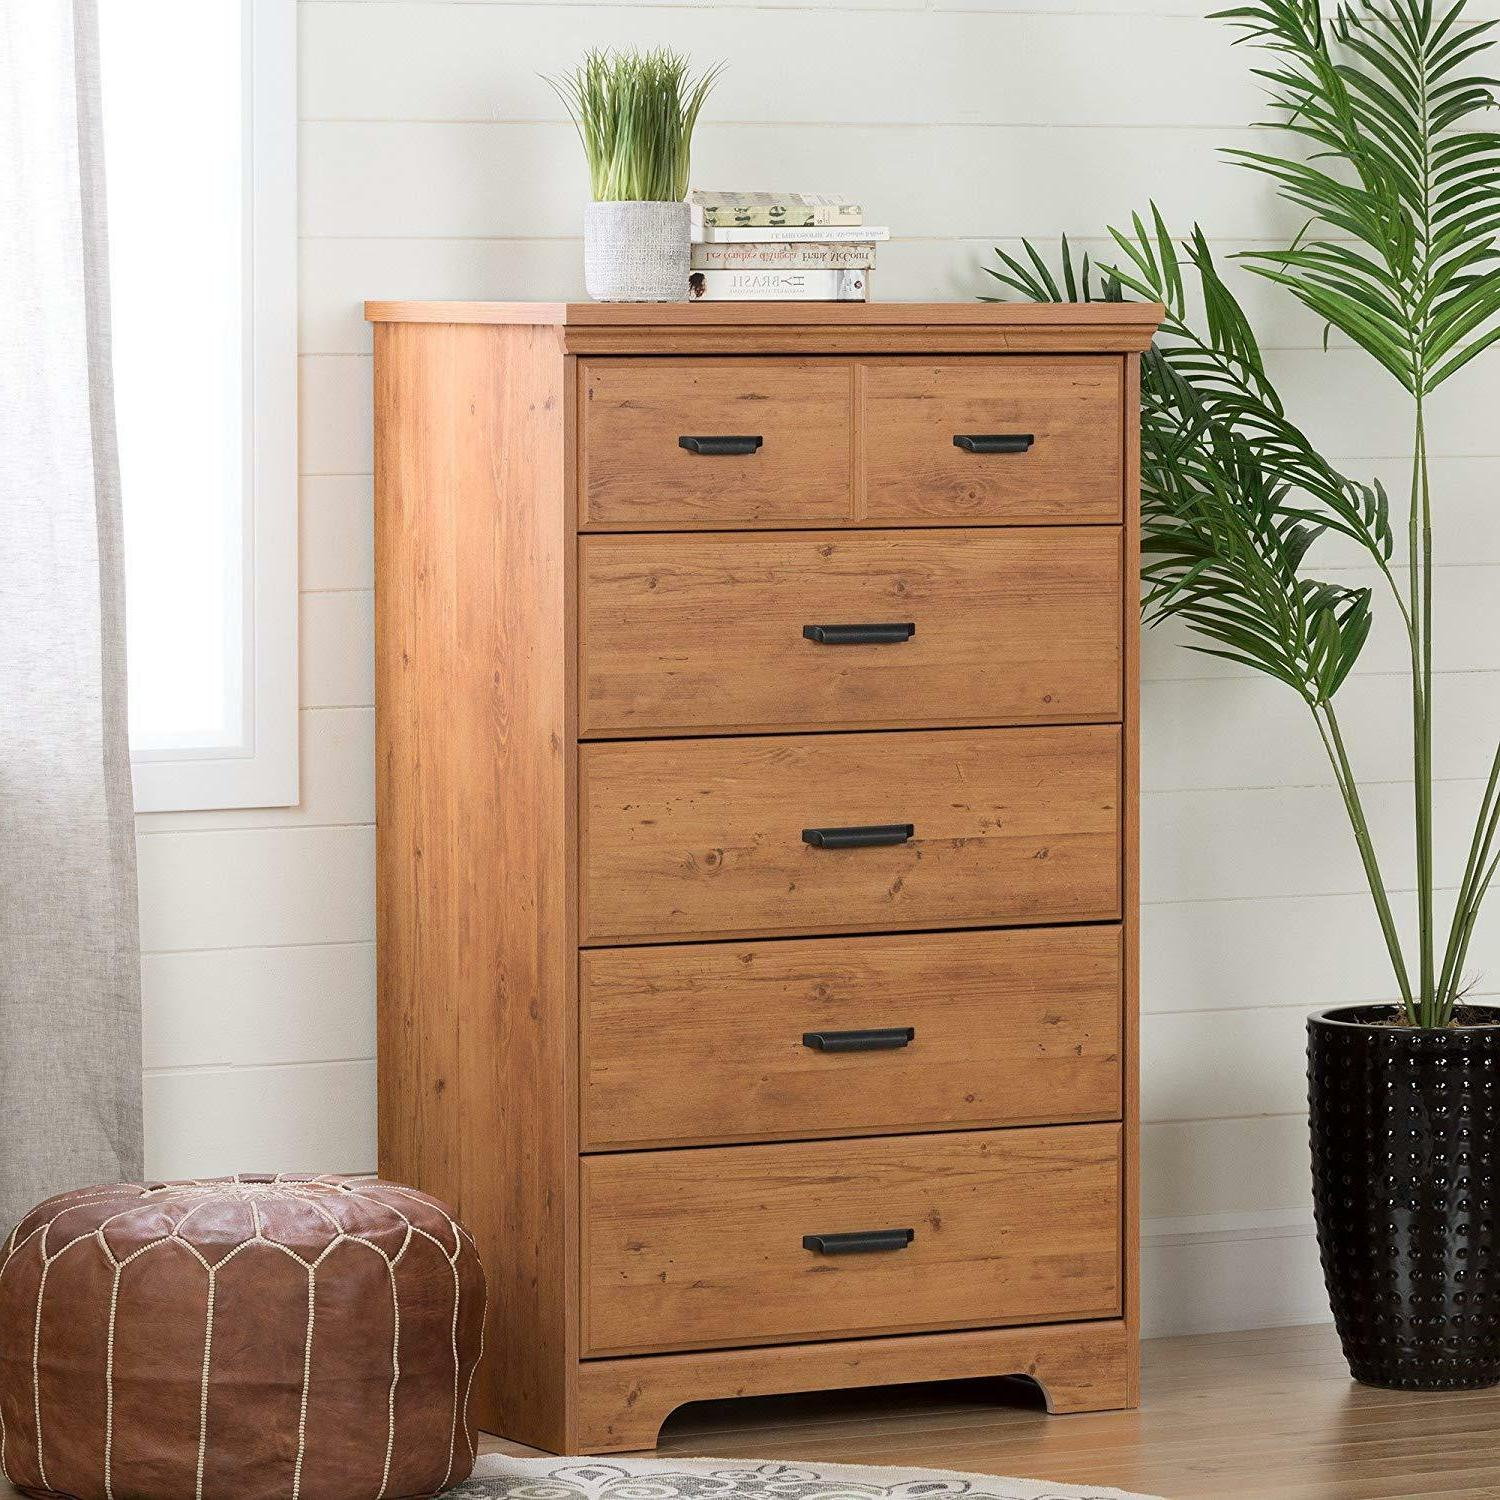 South Shore 5-Drawer Dresser, Pine with Handles